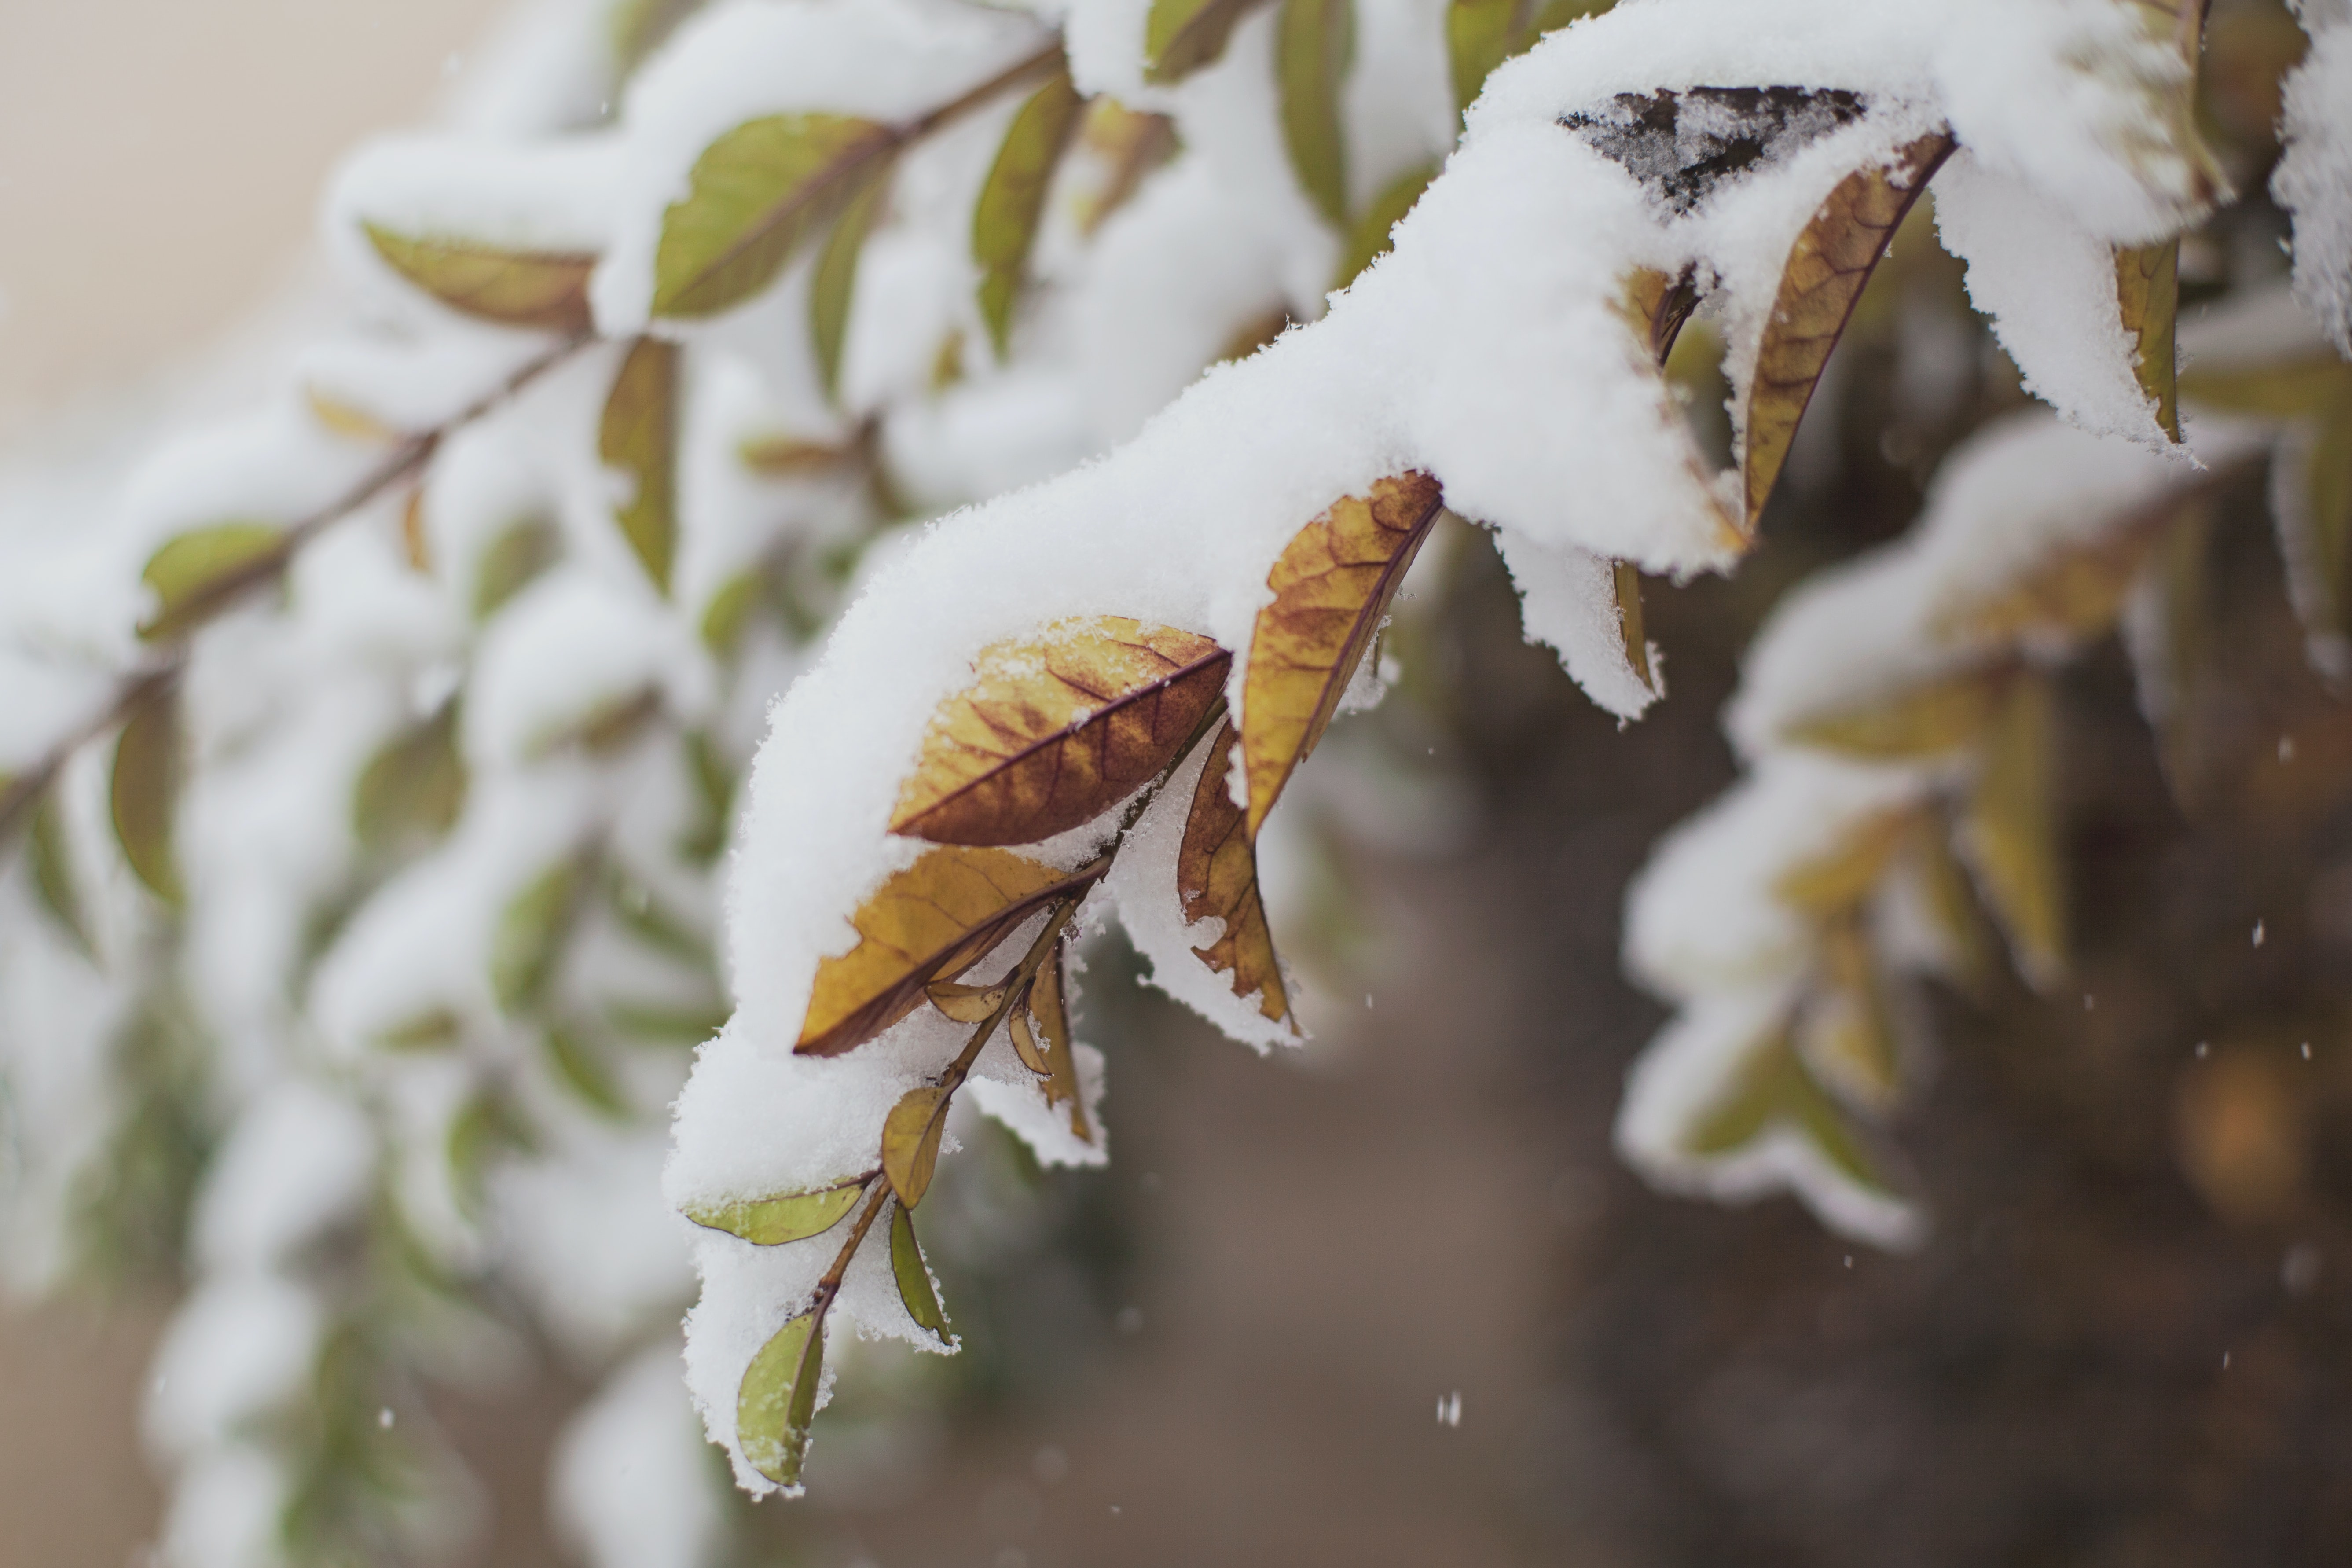 A close up of snow on leaves and branches in the winter in Romania